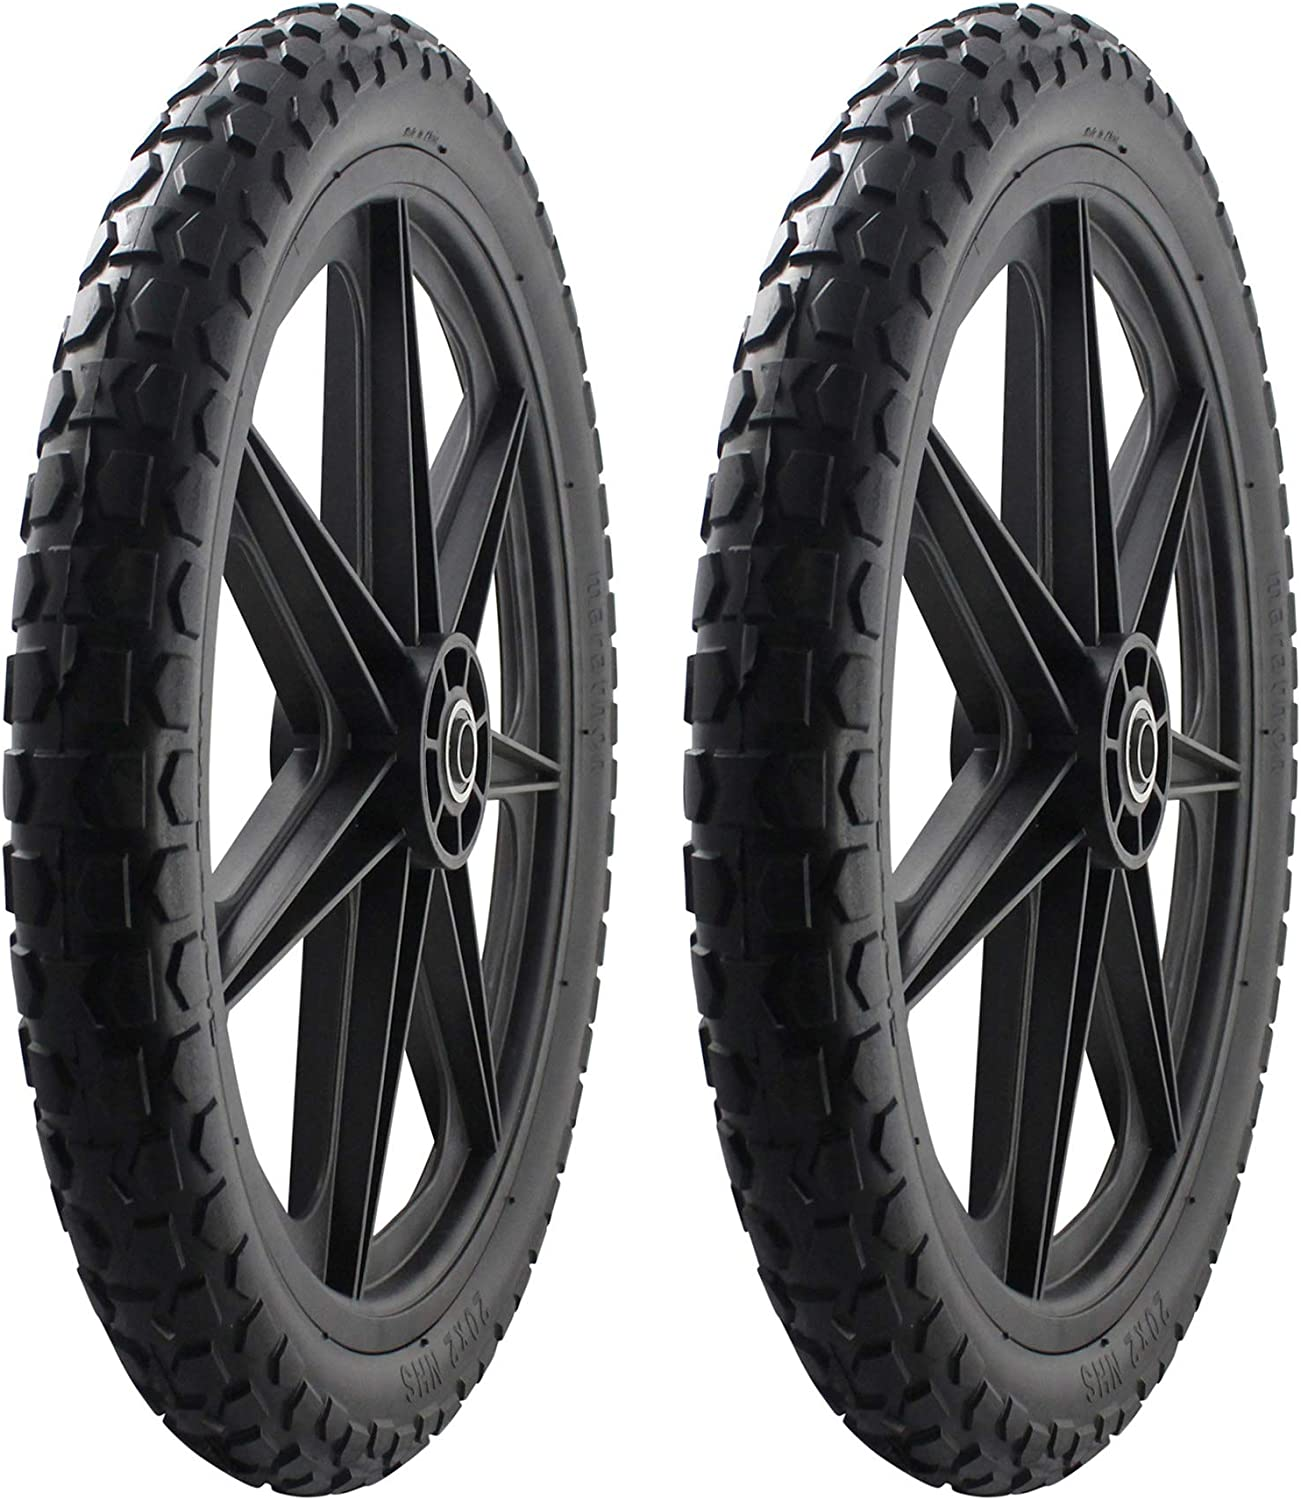 """2 PACK -Marathon 92010 Flat Free 20"""" Replacement Tire Assembly for Rubbermaid Big Wheel Carts, Black"""